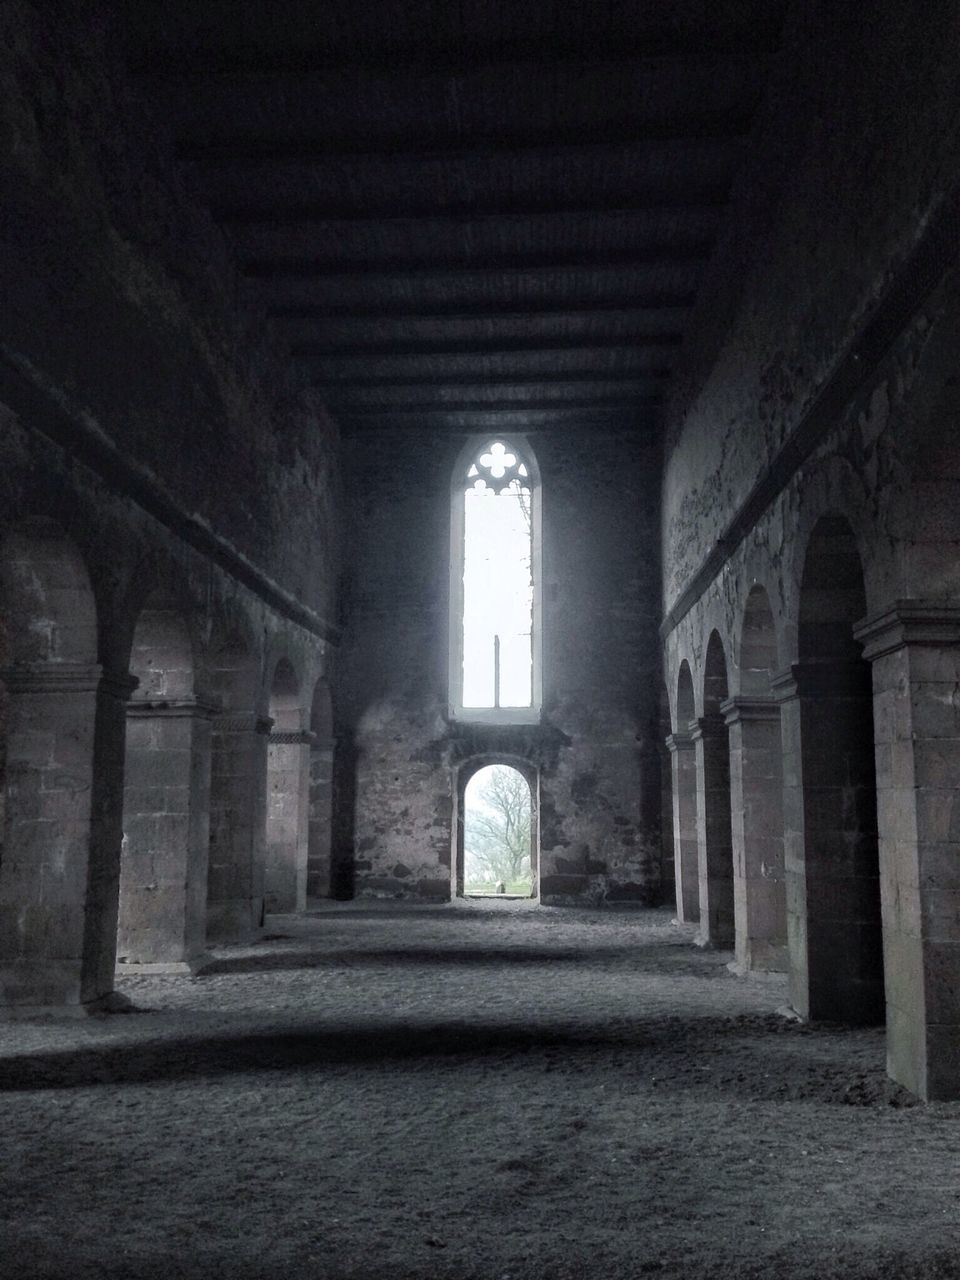 indoors, architecture, history, arch, built structure, the way forward, no people, corridor, window, day, architectural column